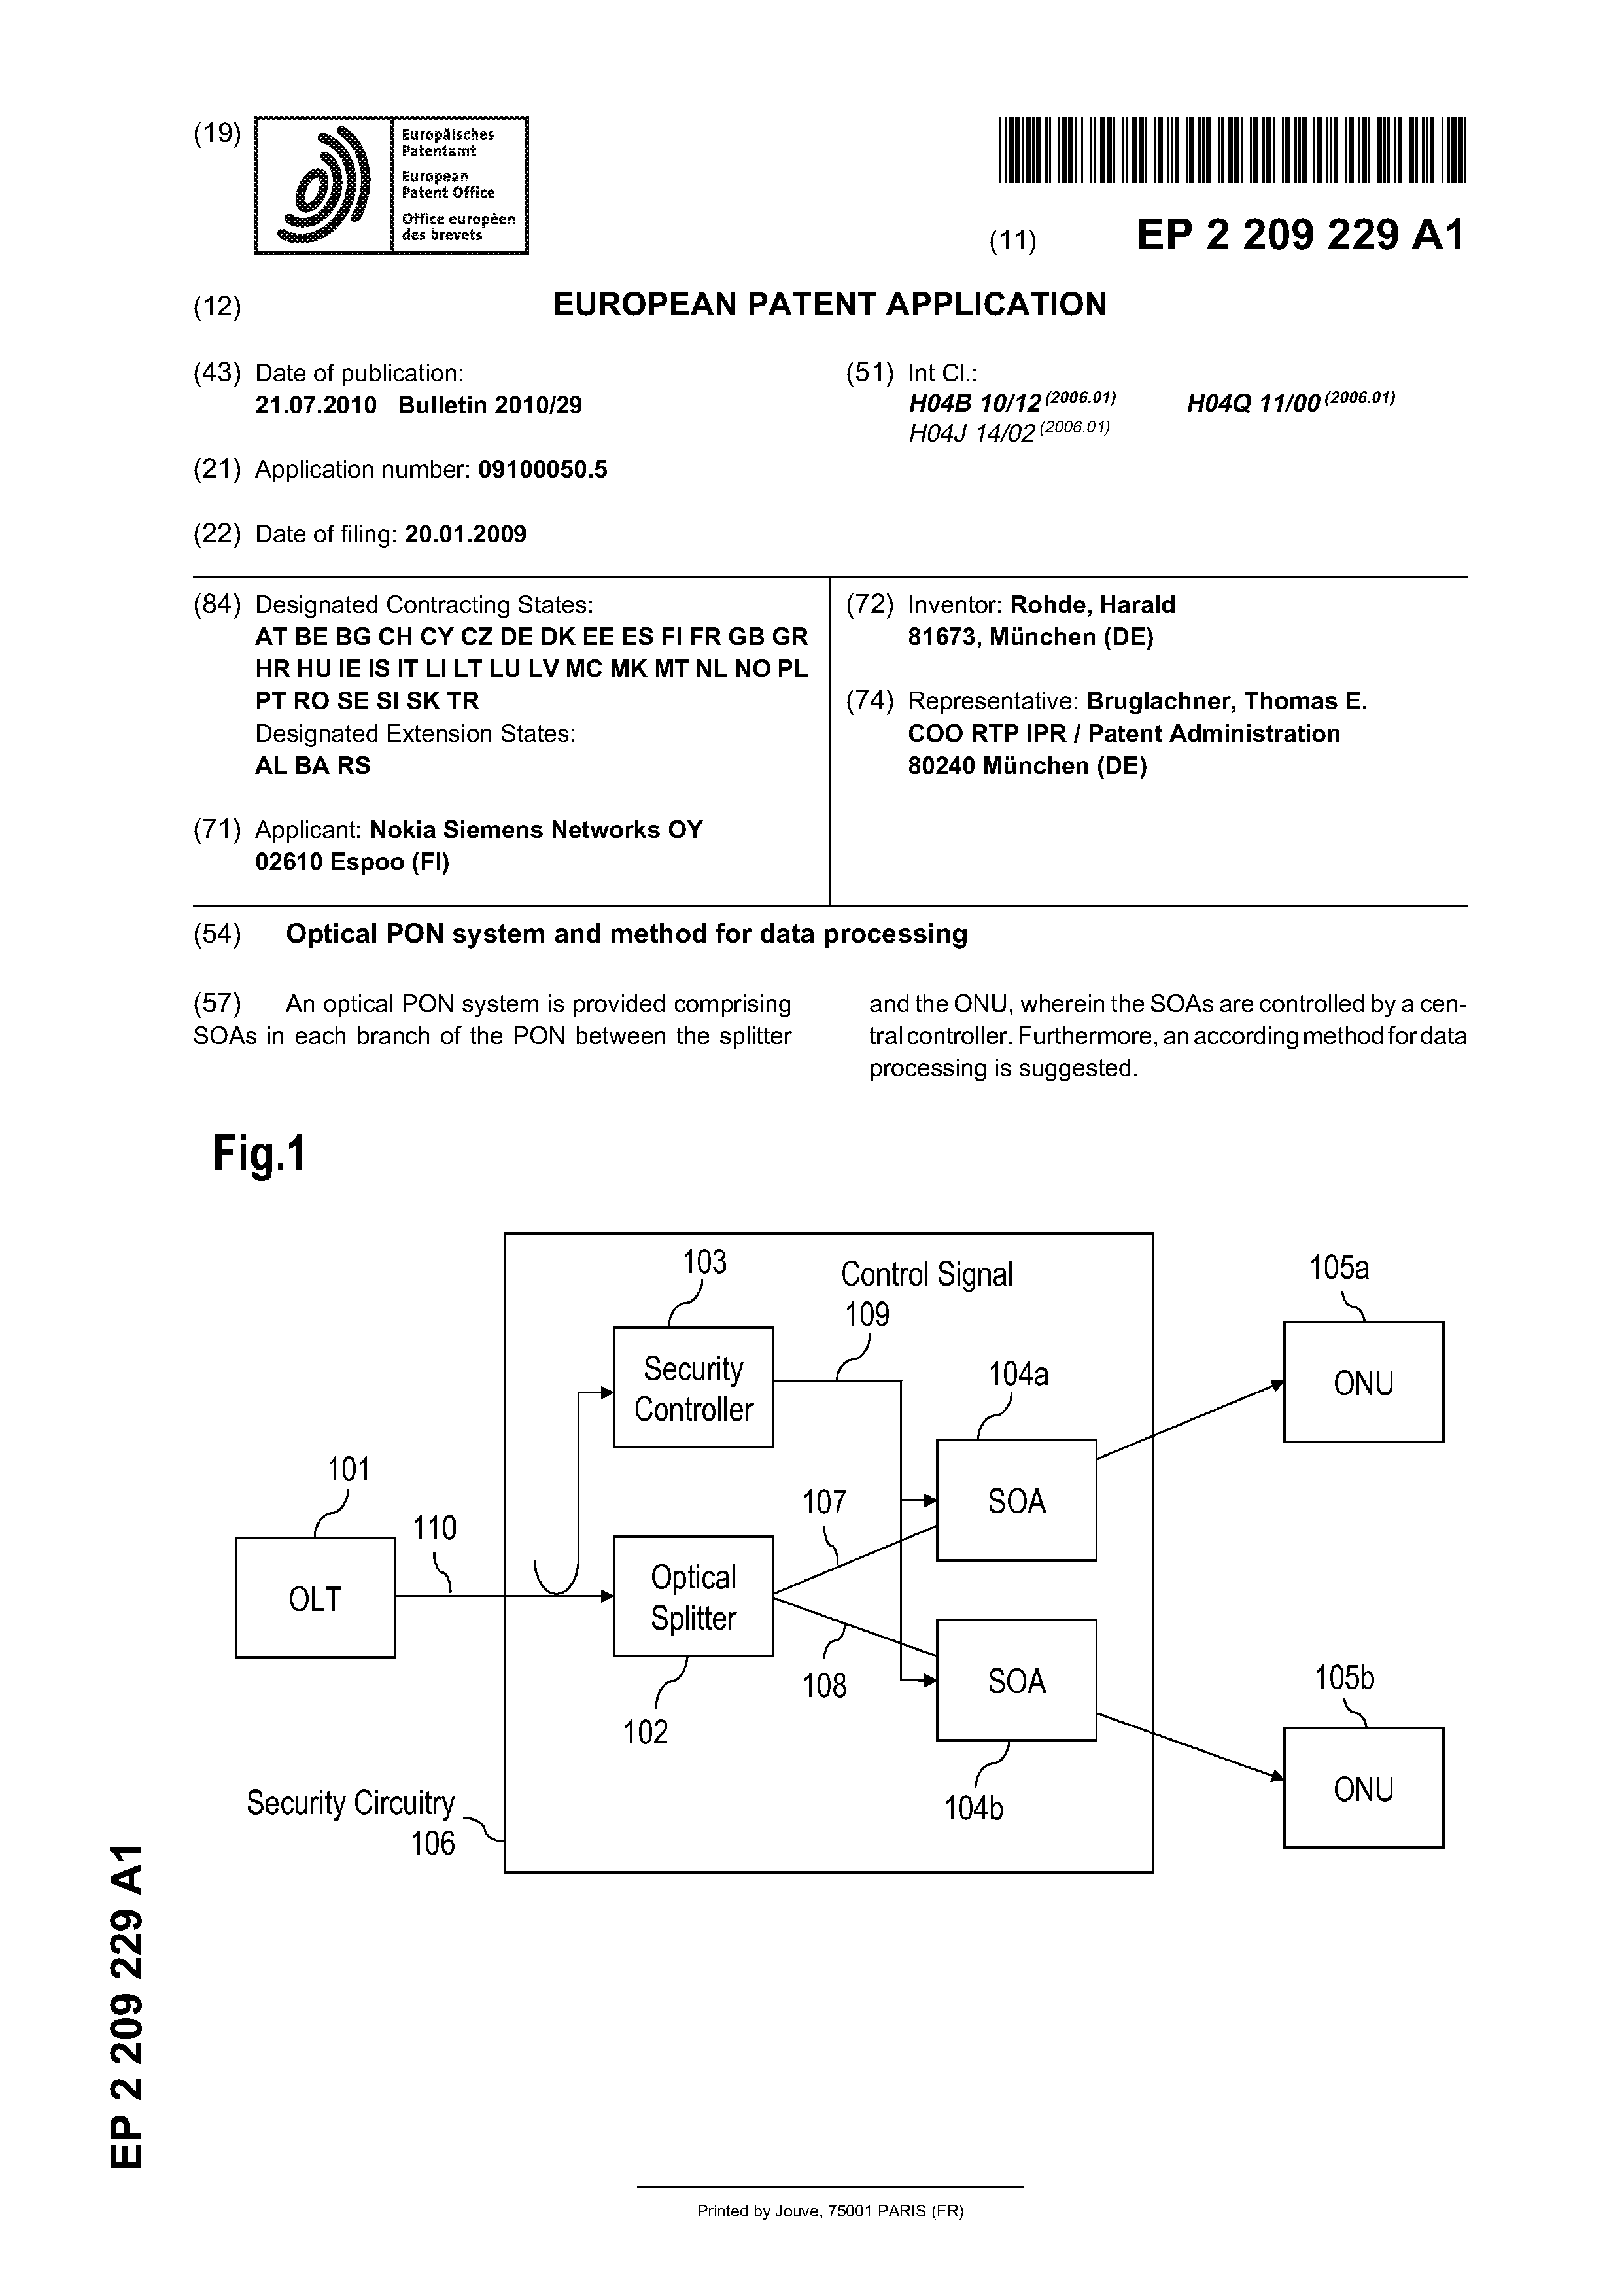 EP 2209229 A1 Optical Pon System And Method For Data